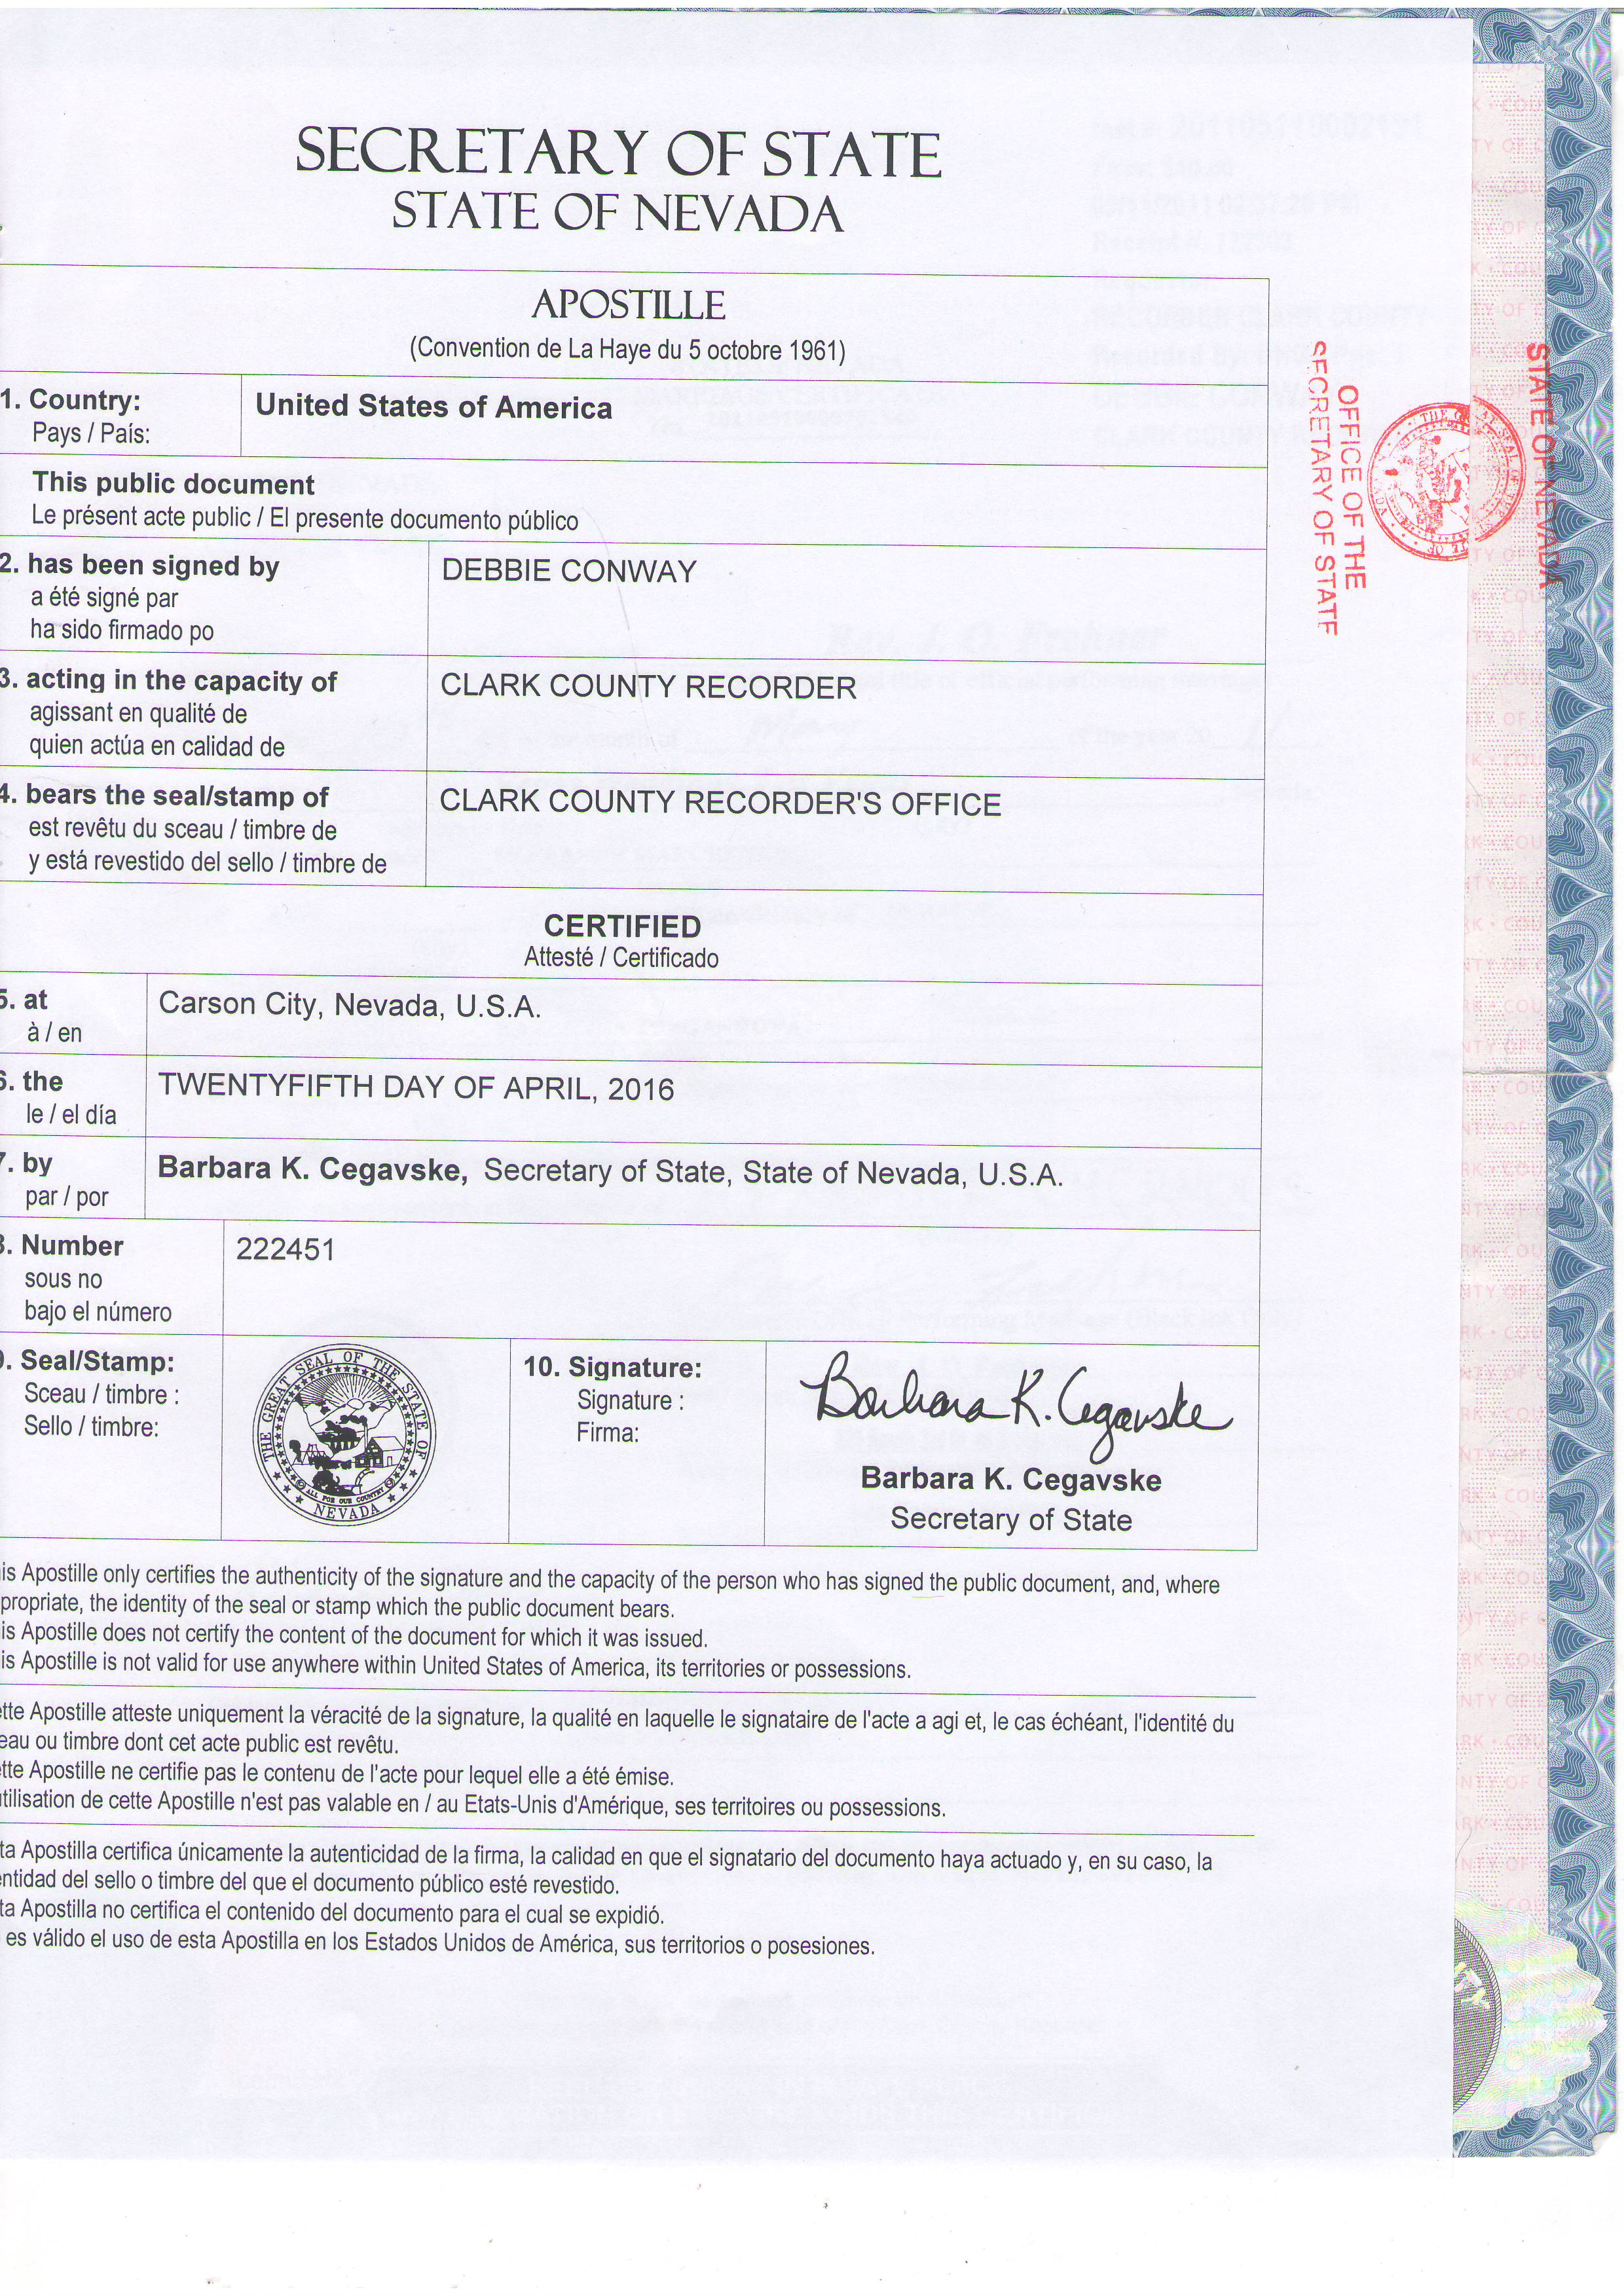 Us apostille obtaining a certified copy from the usa 380 99 nevada apostille aiddatafo Gallery